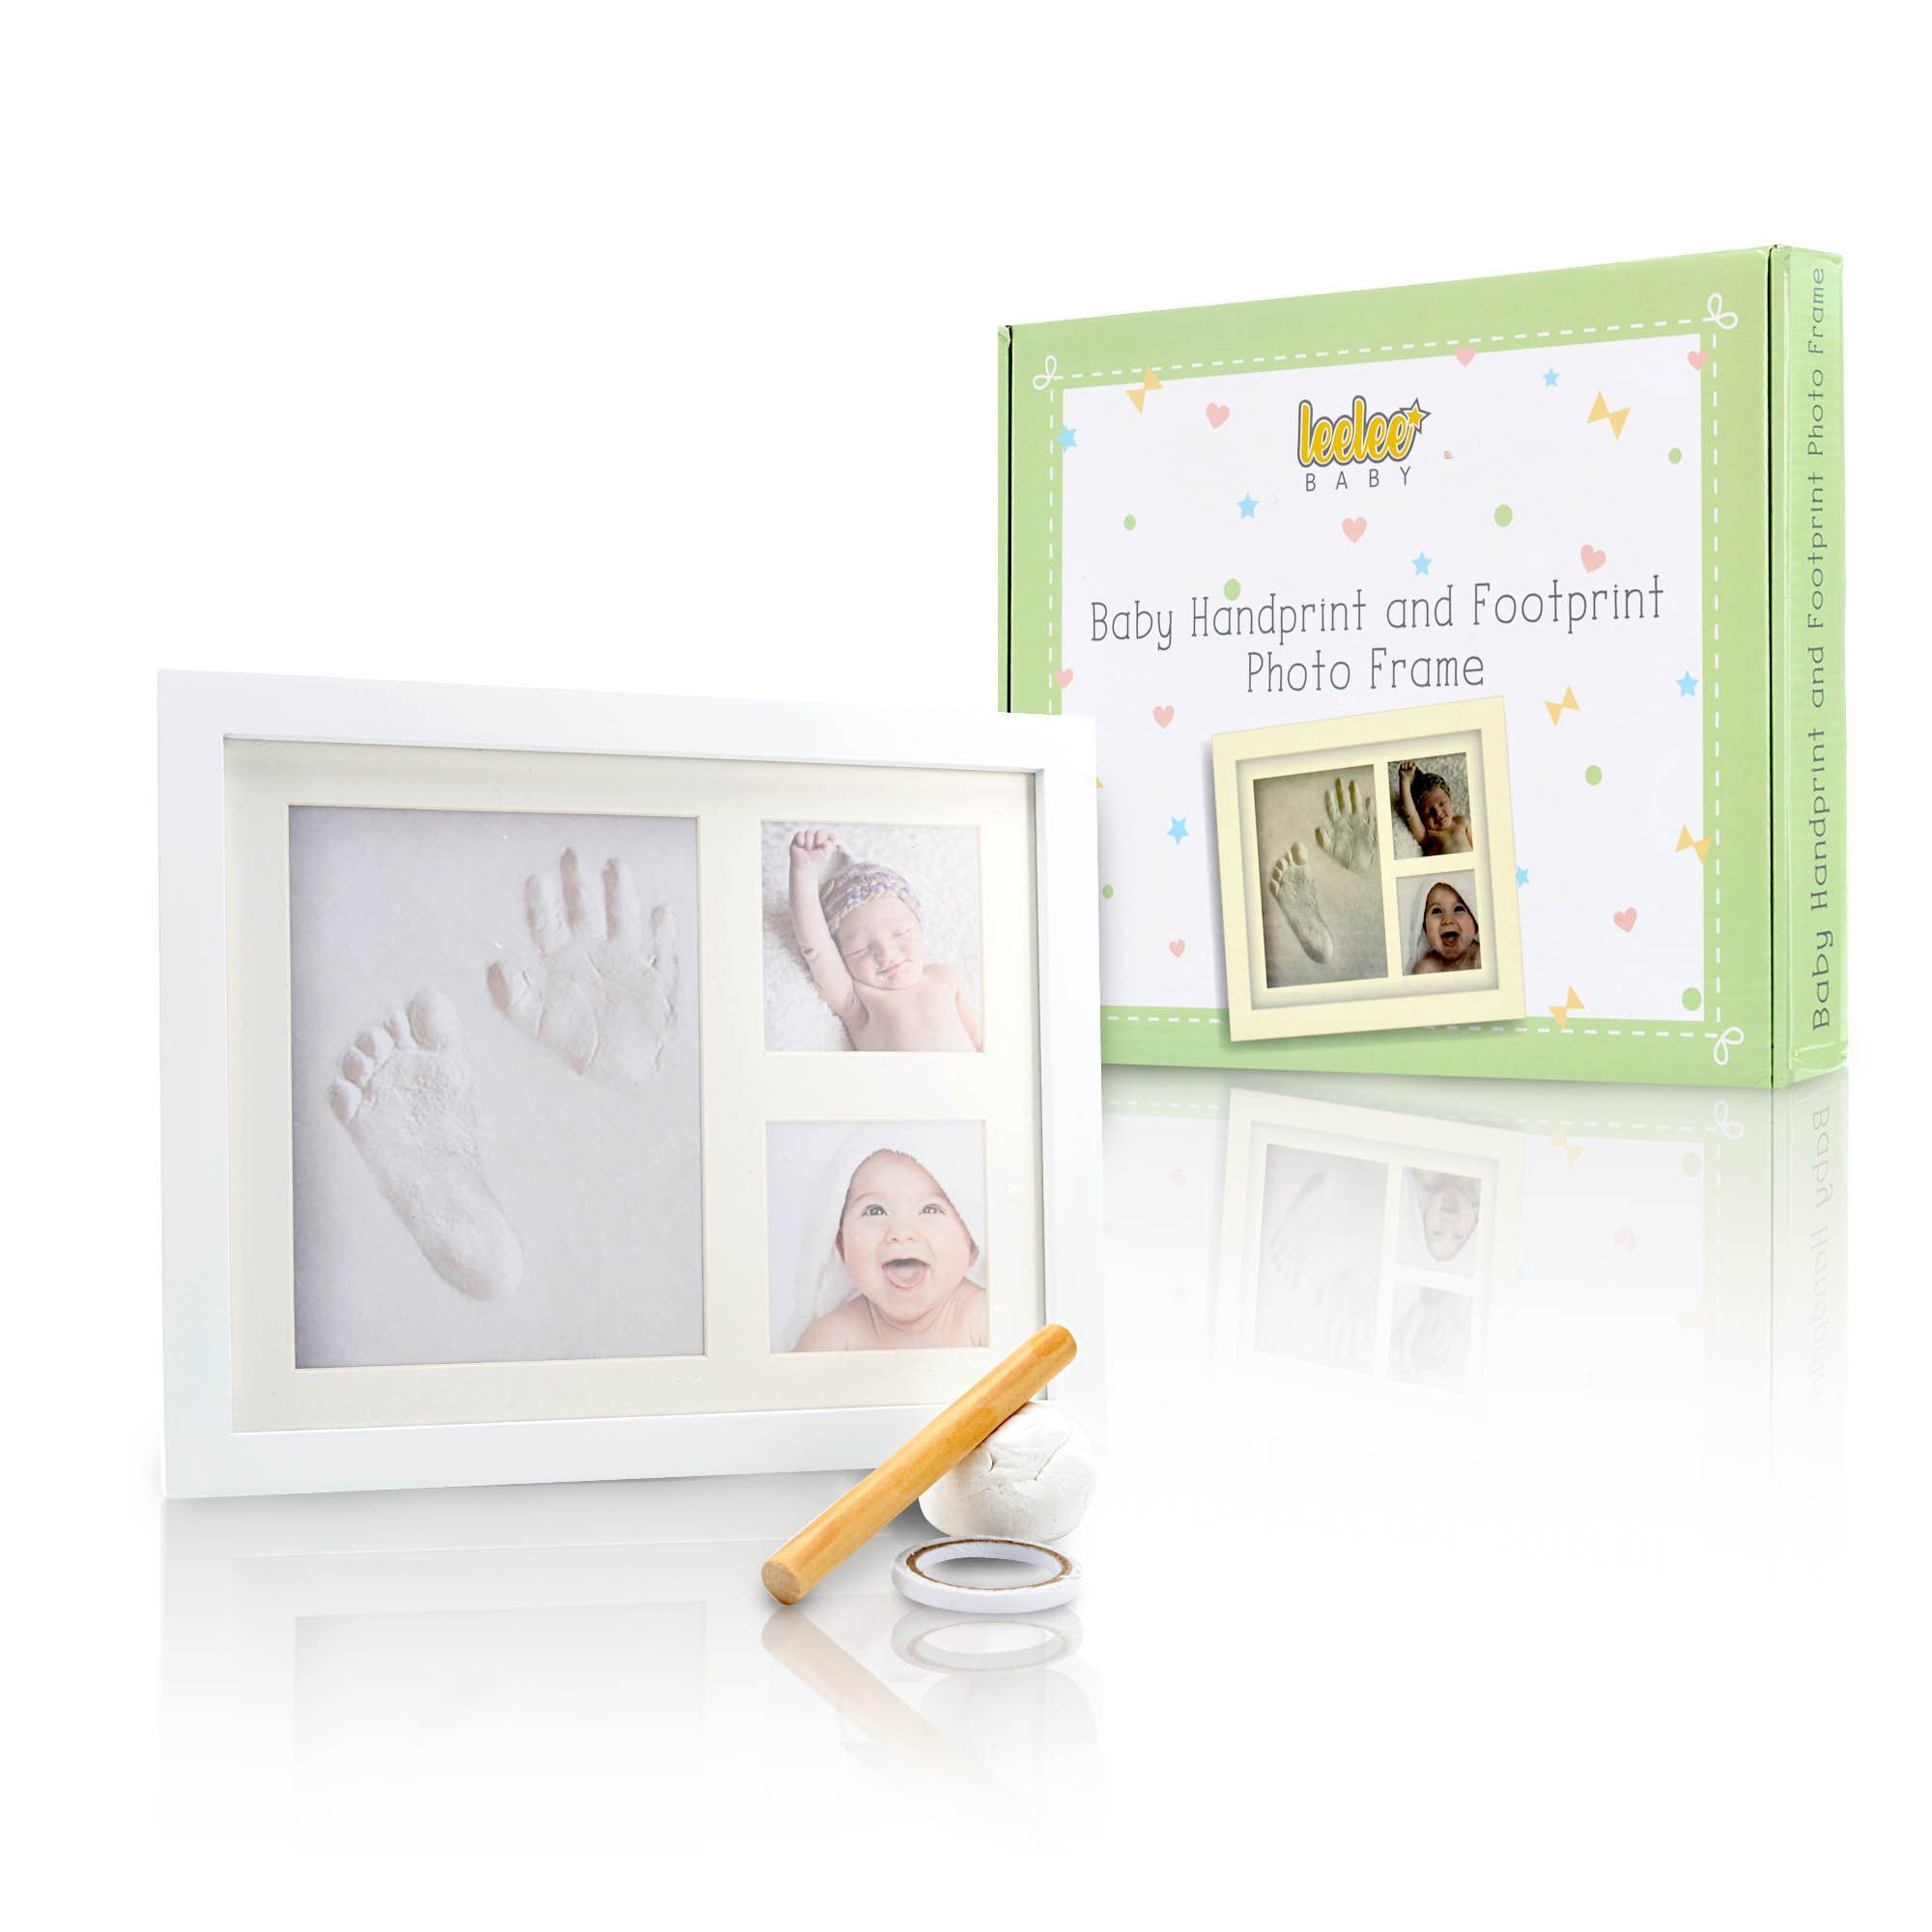 Baby Handprint & Footprint Picture Frame Kit by LeeLee Baby - Cute ...